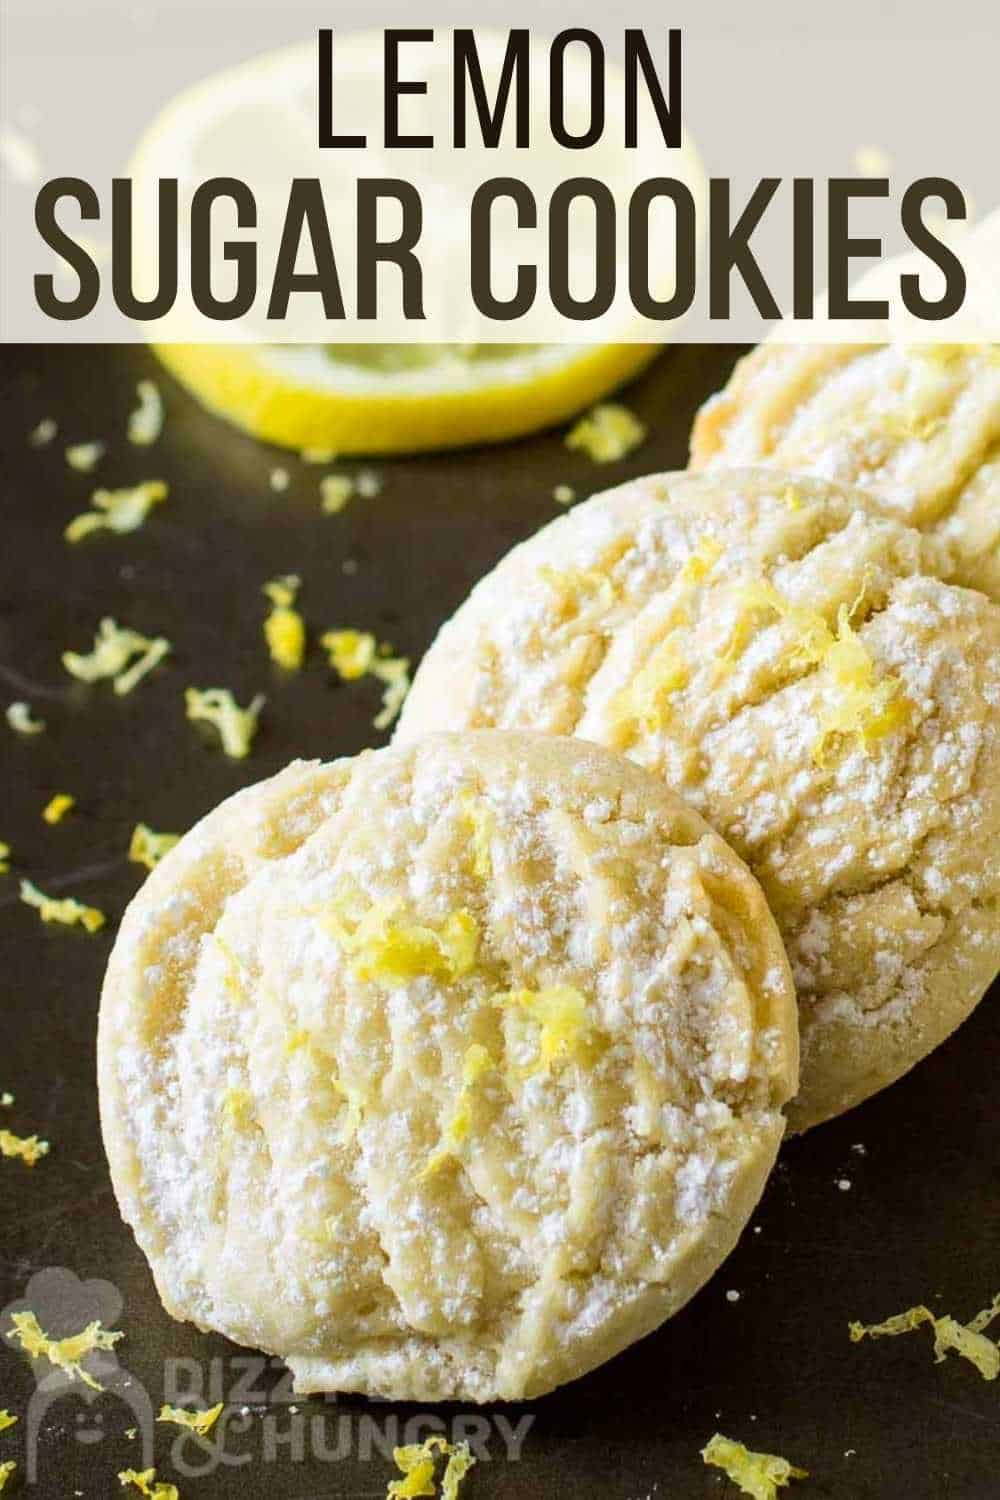 Close up shot of three lemon cookies laying on each other garnished with lemon shavings with a lemon slice in the background.